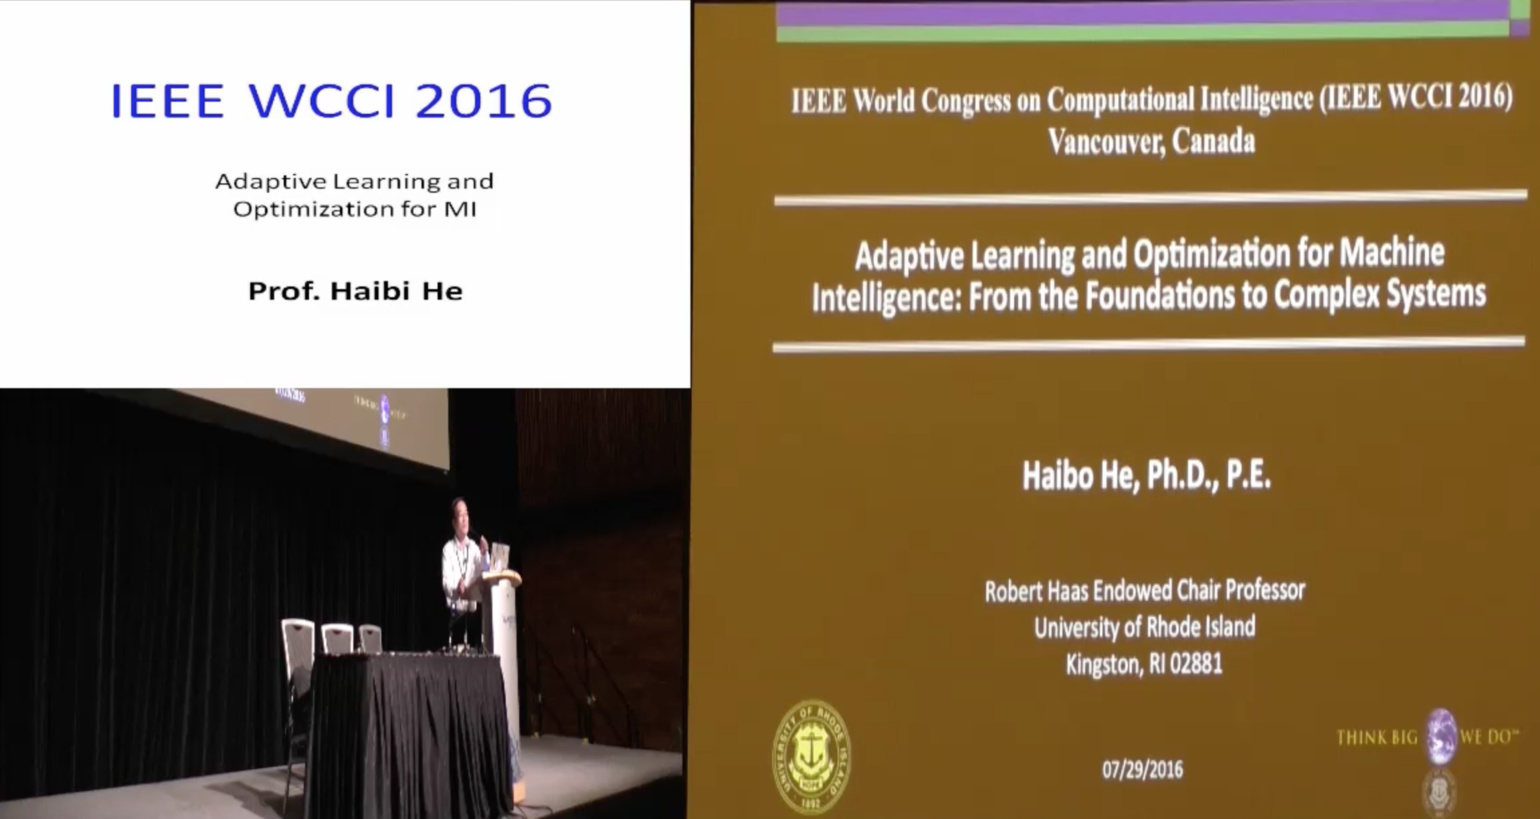 Adaptive Learning and Optimization for MI: From the Foundations to Complex Systems - Haibo He - WCCI 2016